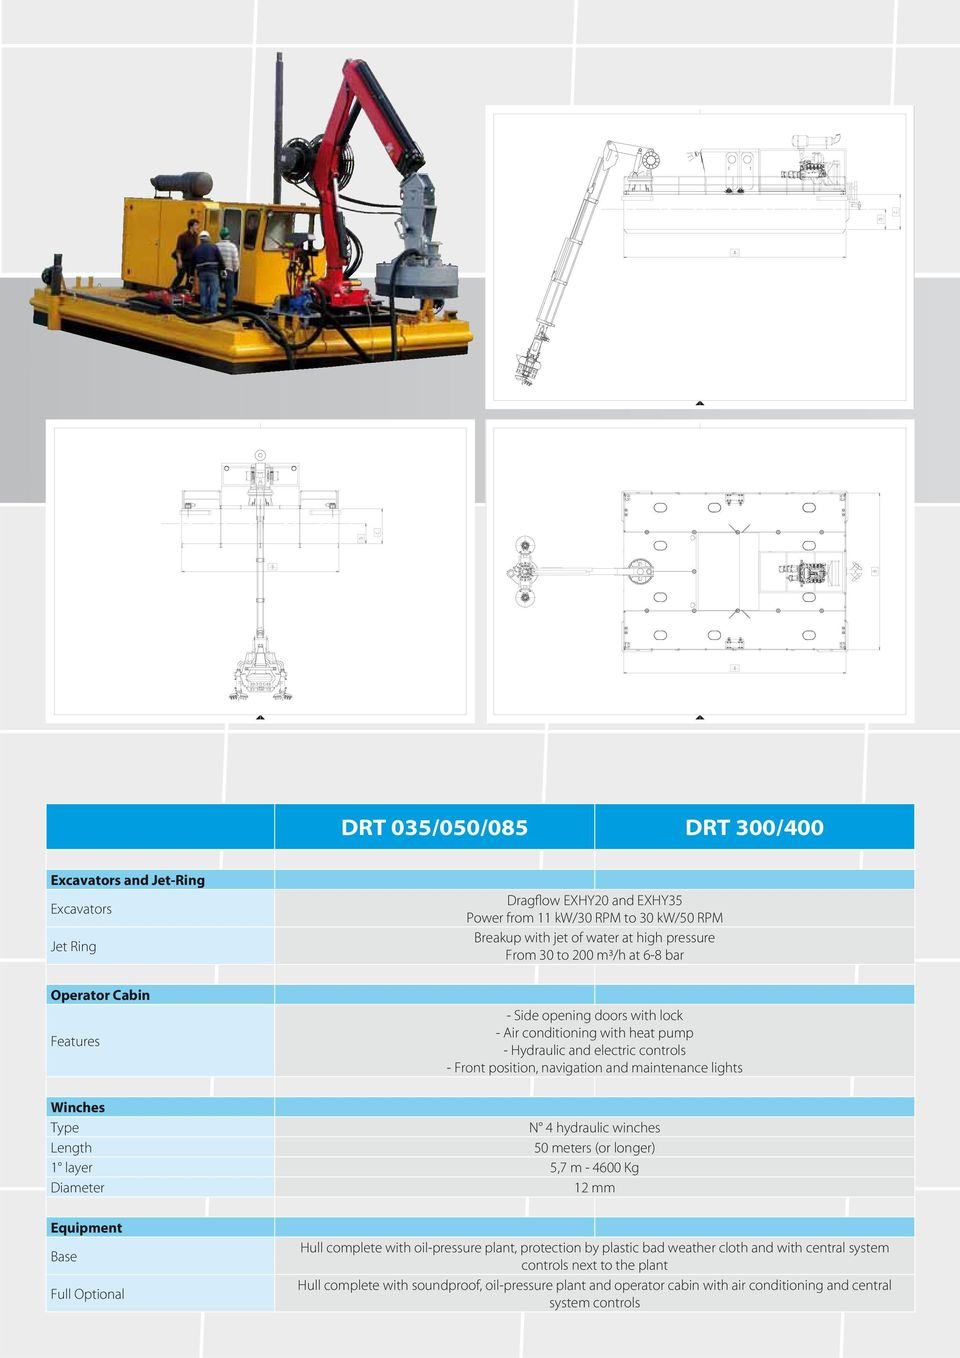 lights Winches Type N 4 hydraulic winches Length 50 meters (or longer) 1 layer 5,7 m - 4600 Kg Diameter 12 mm Equipment Base Full Optional Hull complete with oil-pressure plant, protection by